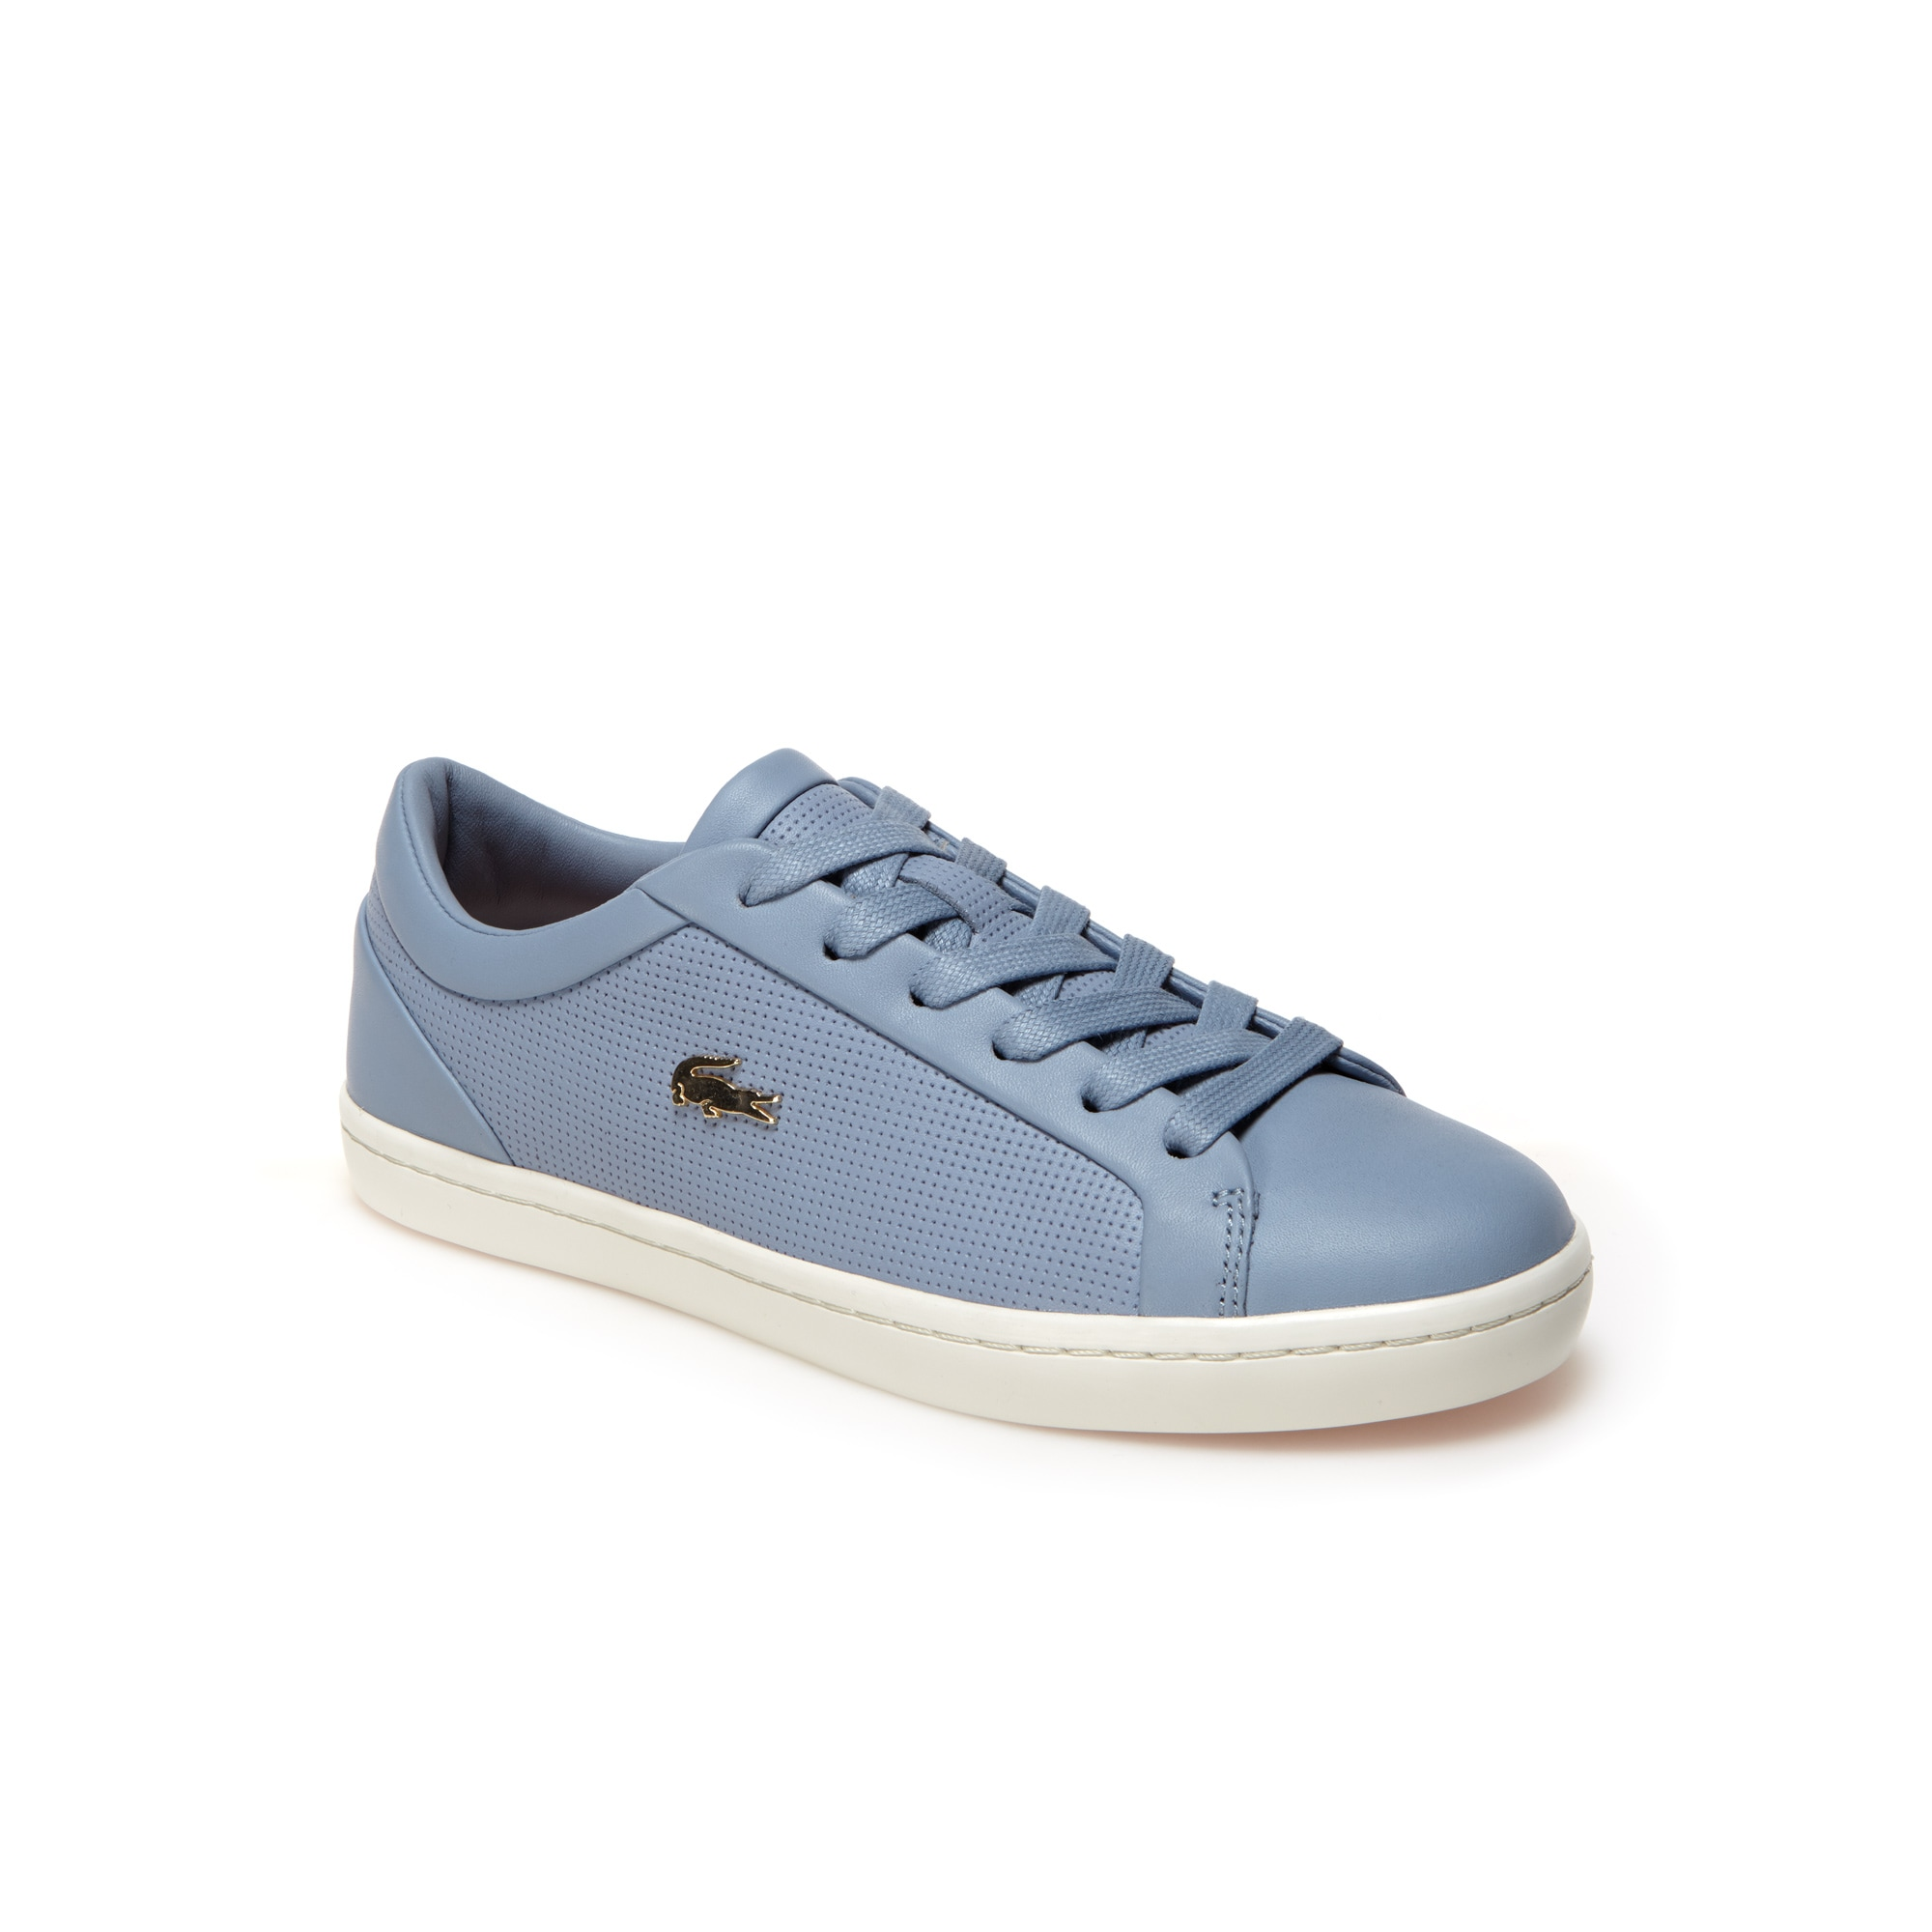 c8082177ae5e8 Women s Straightset Nappa Leather Trainers